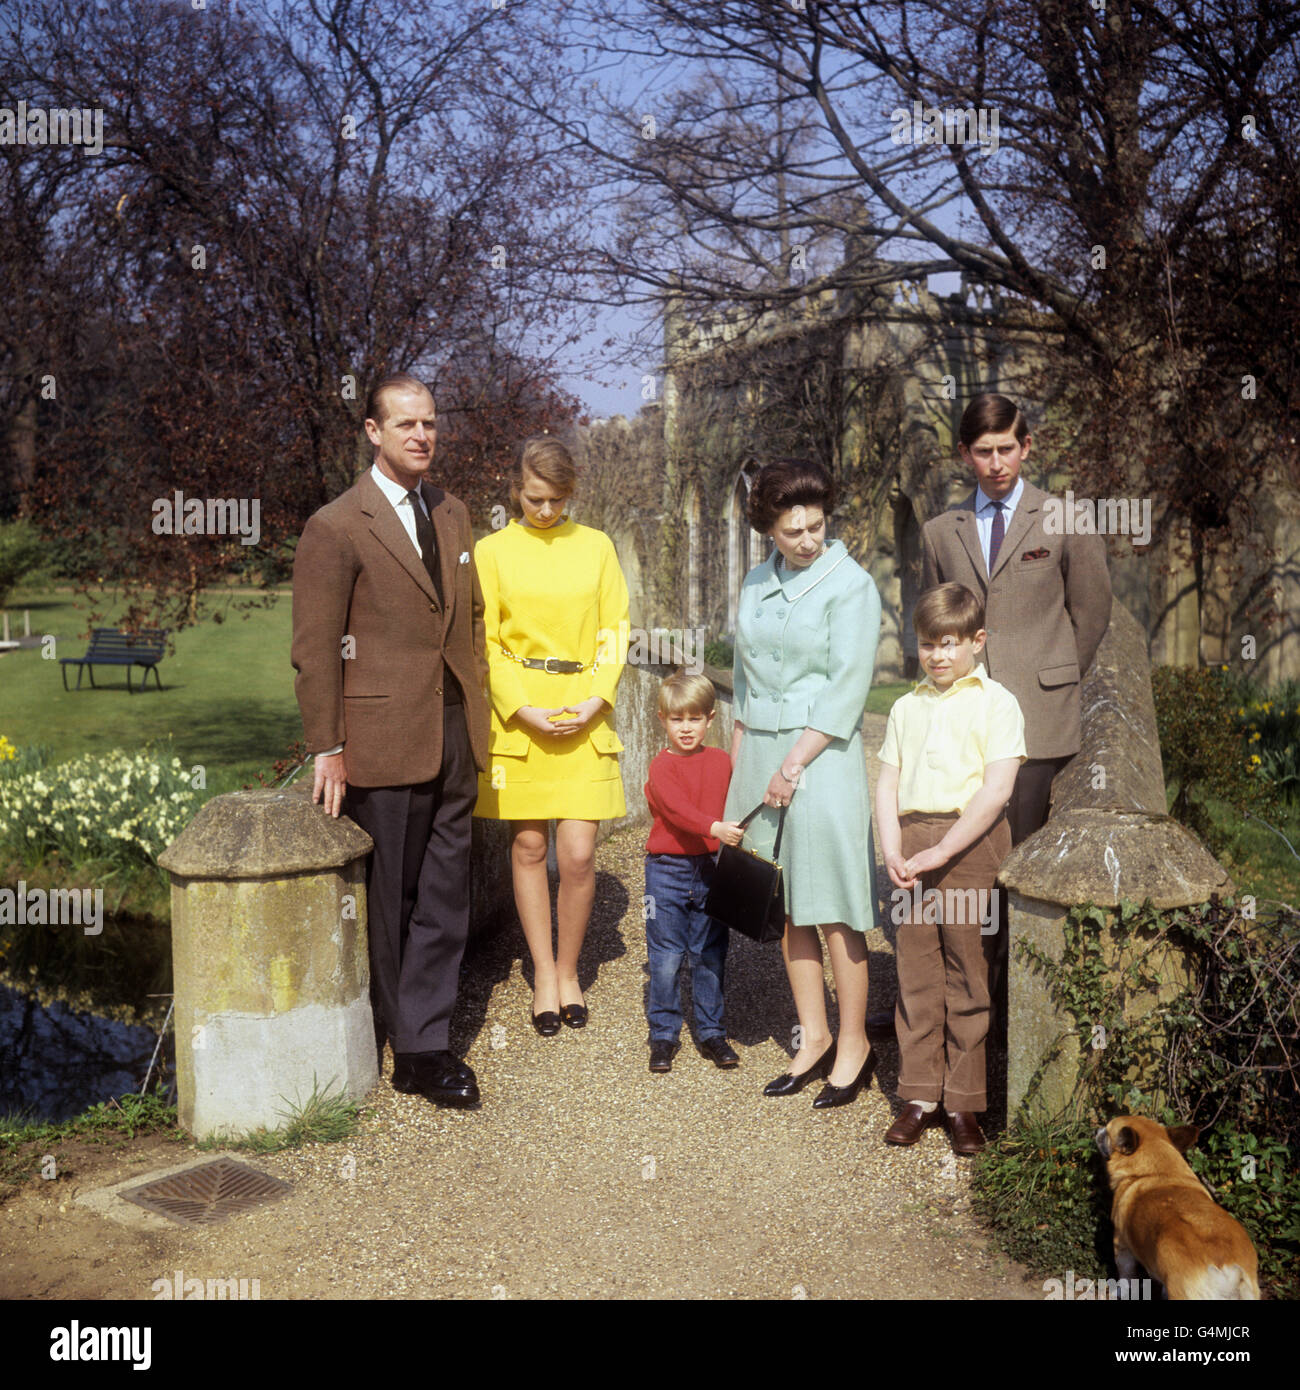 Royalty - Royal Family - Frogmore House, Windsor - Stock Image